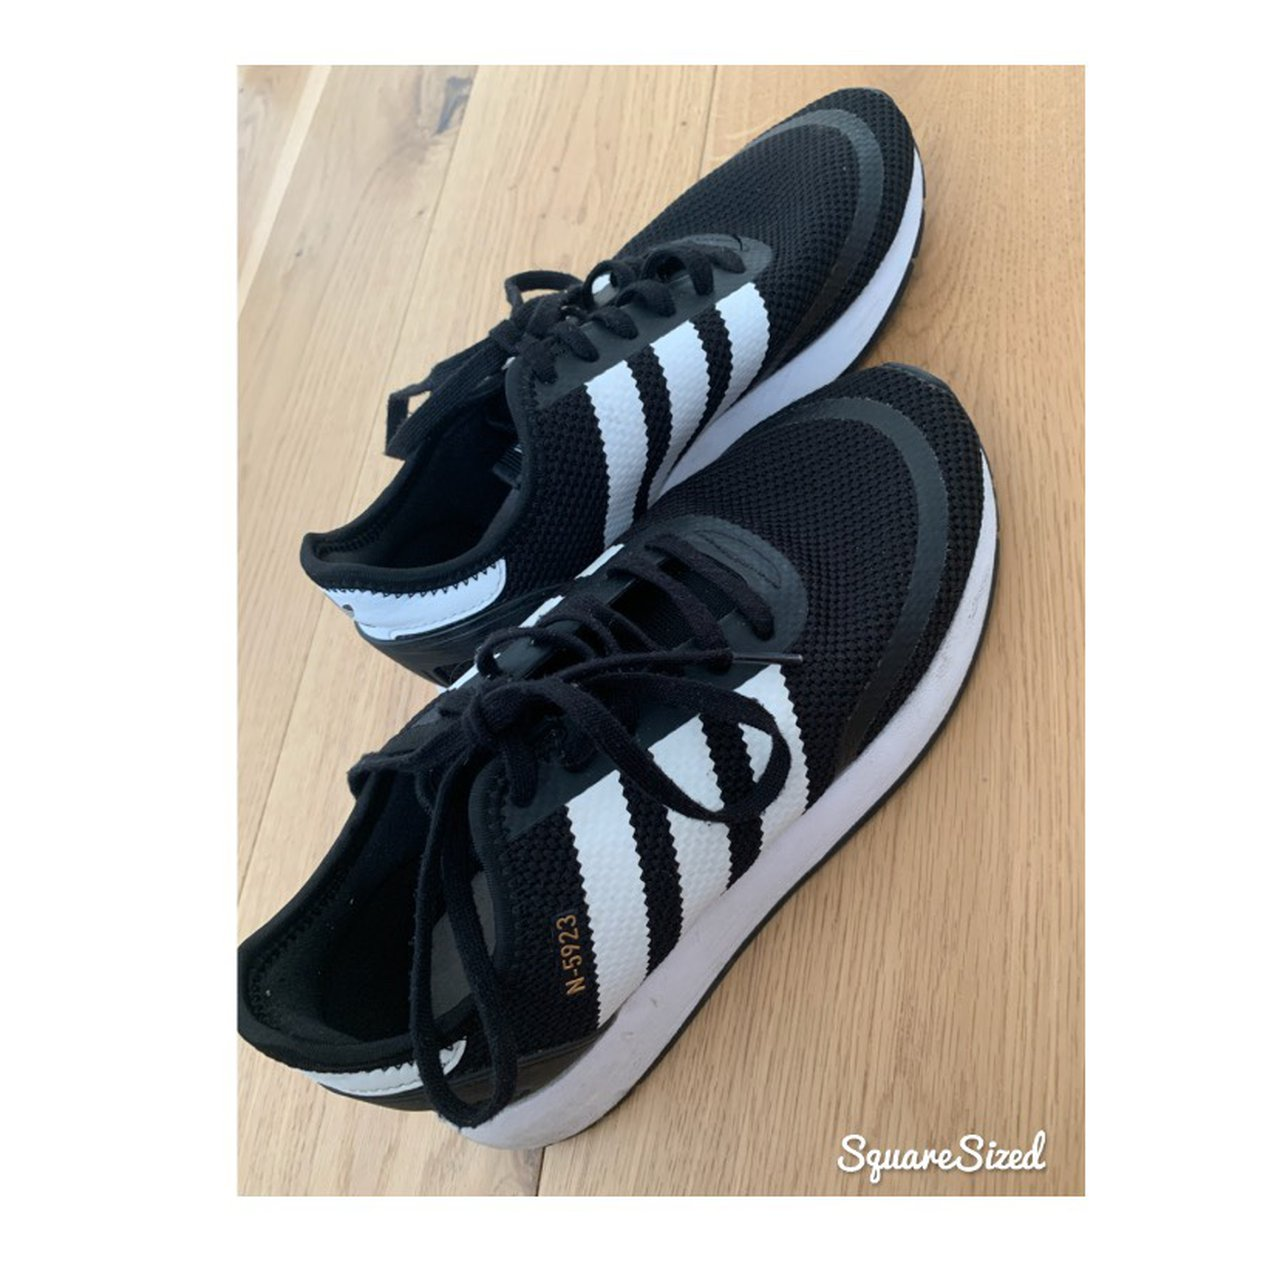 Adidas trainers size 5.5 £15 including